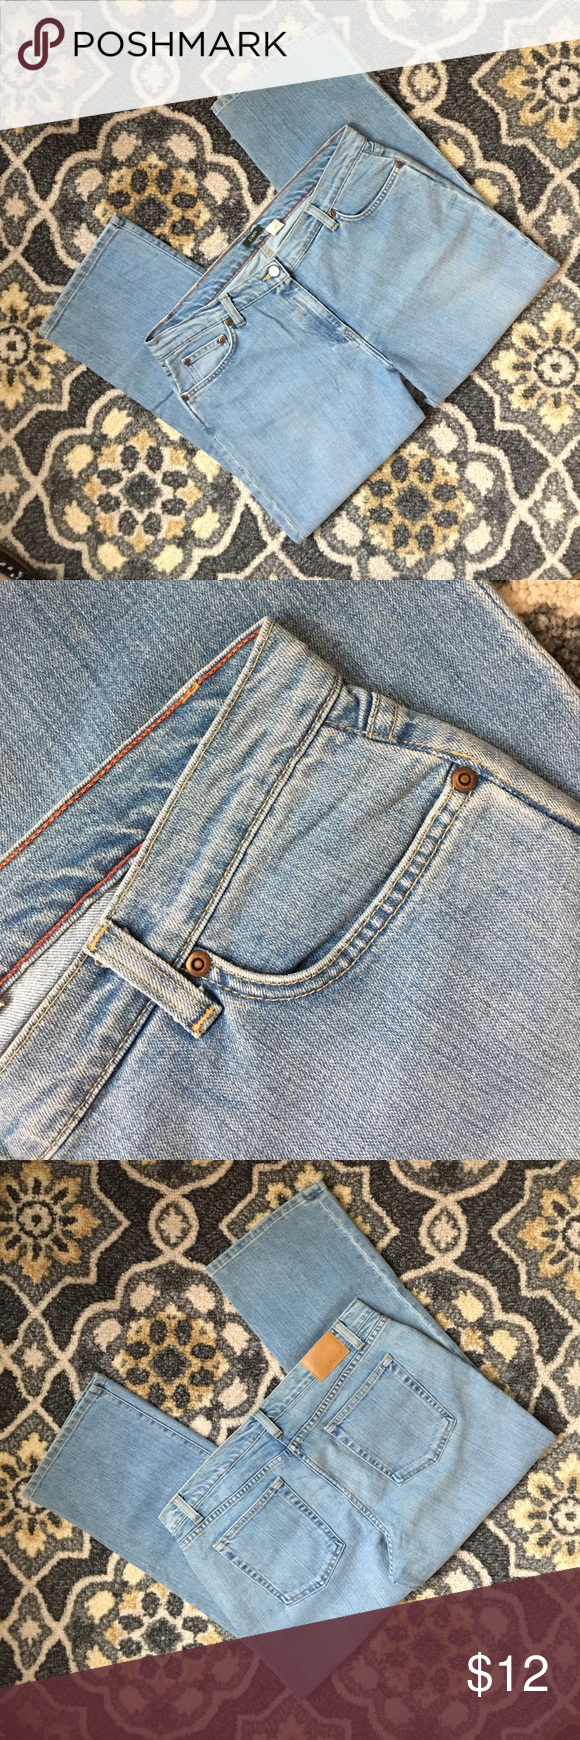 J Crew Straight Leg Relaxed Fit Jeans SZ 14 J Crew straight leg relaxed jeans in light stonewash. Classic five pocket style. Perfect condition - no damage or stains. Laundered once according to instructions but sat in the closet and were never worn. SZ 24. Great pair of classic J Crew jeans! J. Crew Jeans